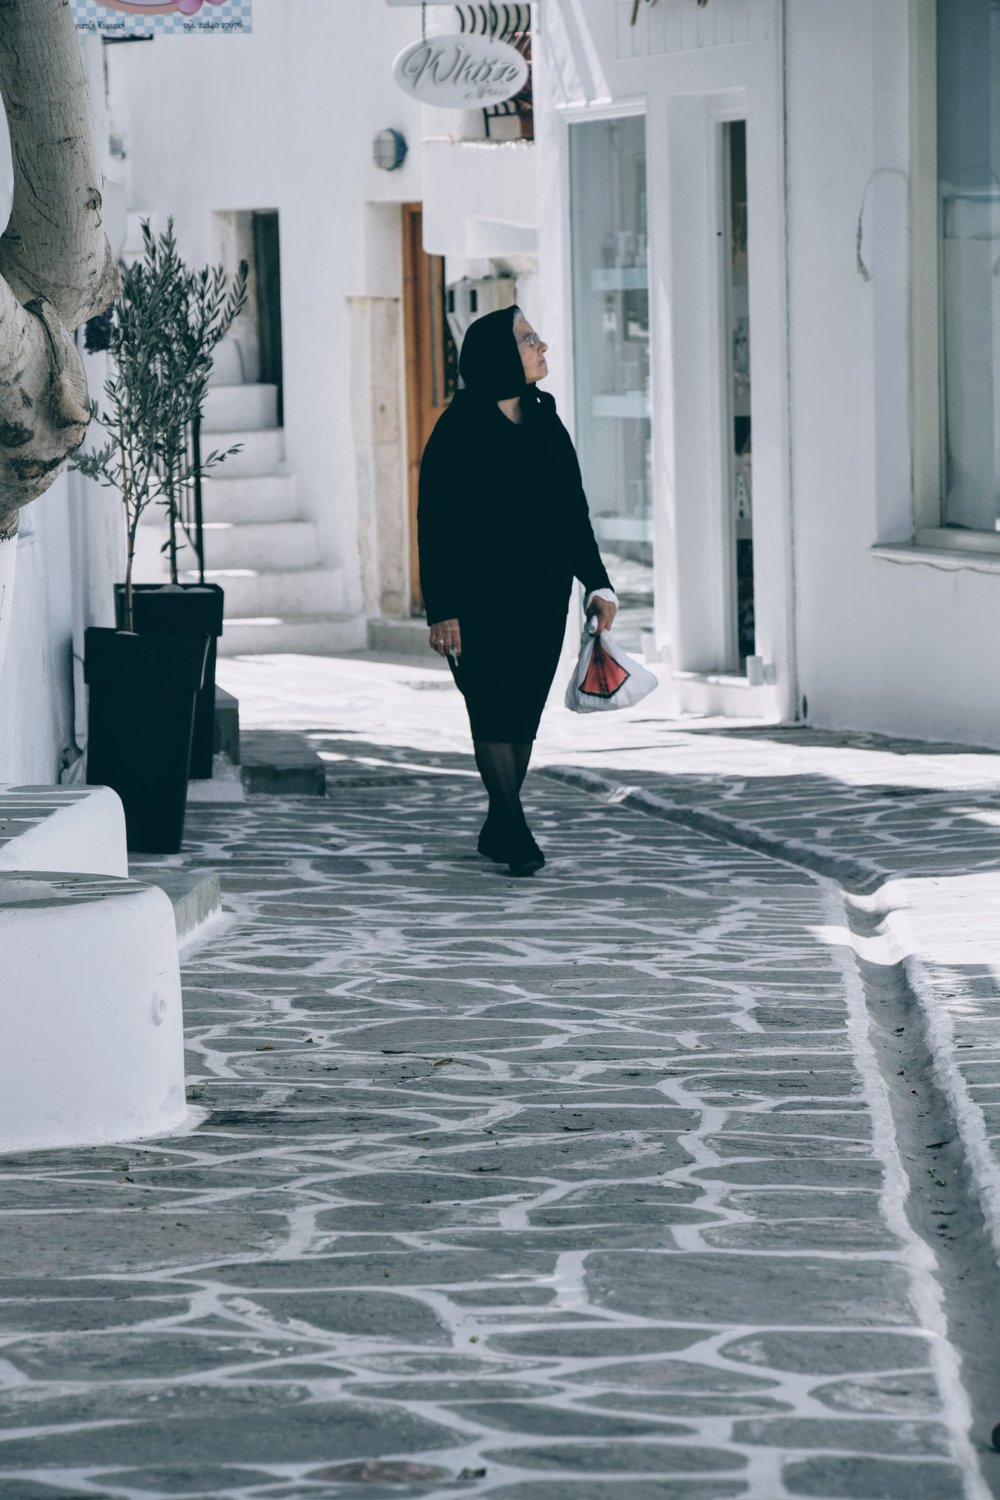 Strolling in the streets of Parikia